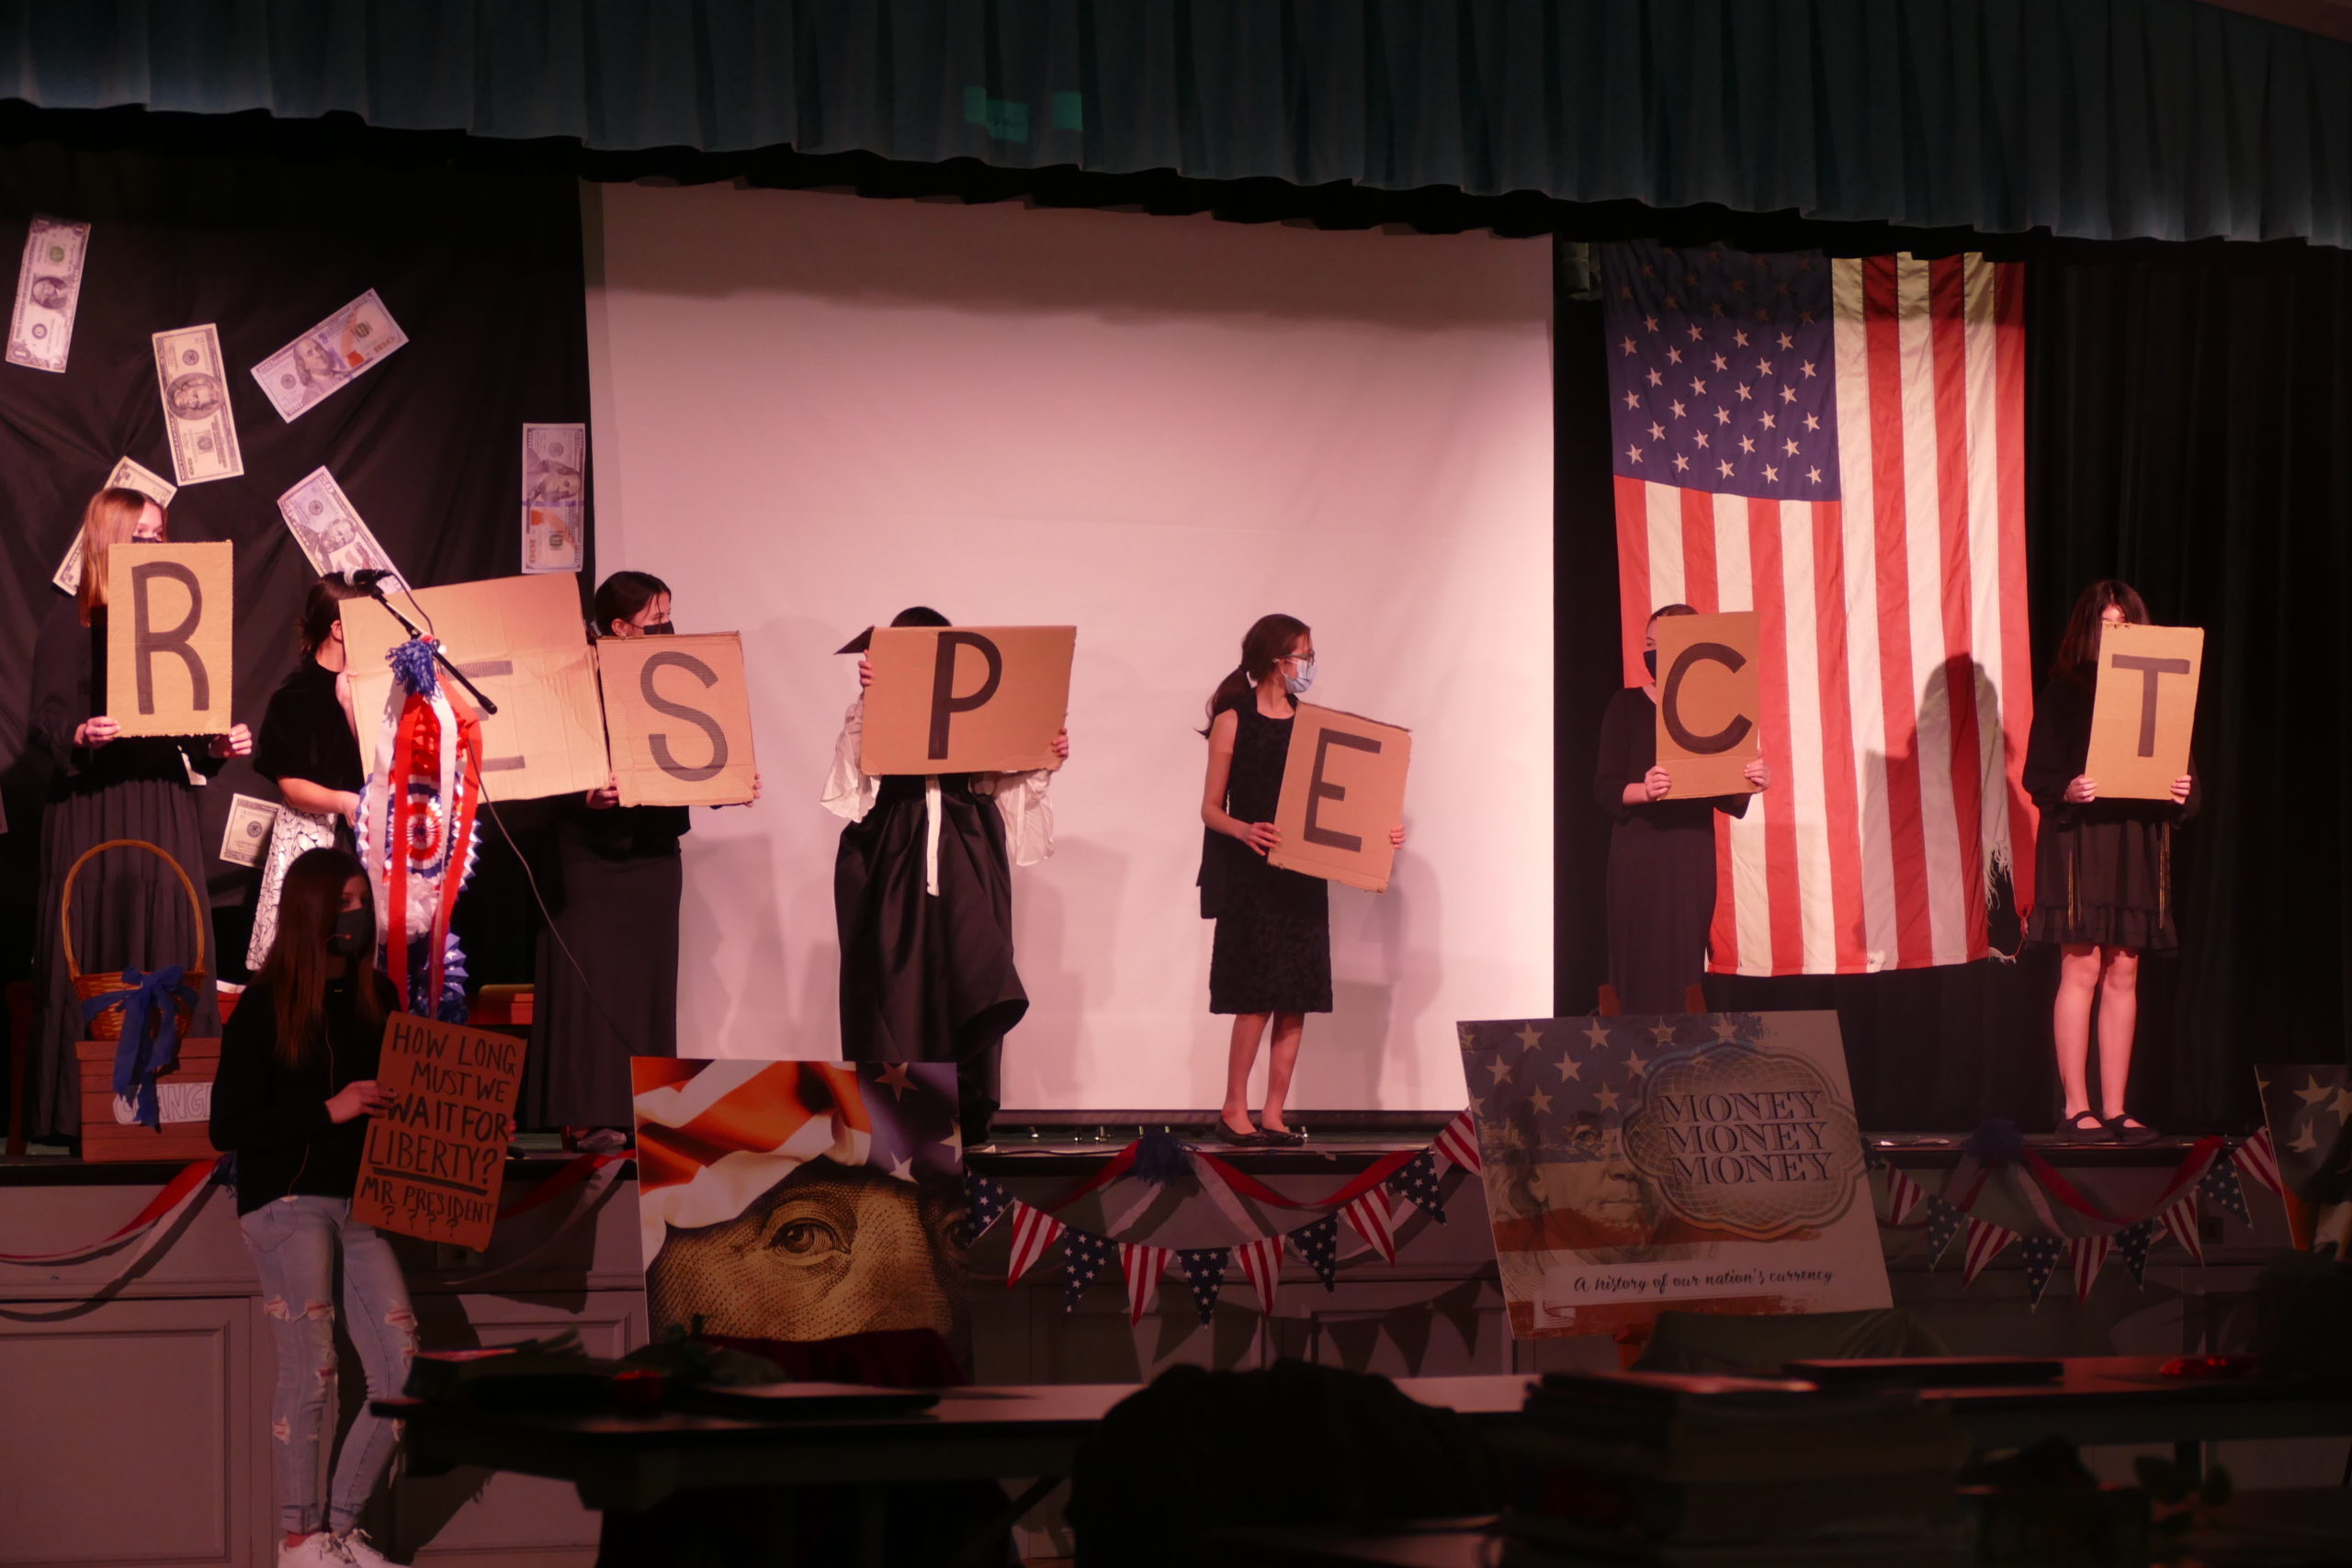 """Seventh grade girls closed the """"Money, Money, Money"""" assembly at Our Lady of the Hamptons with the suffragettes singing, """"R-E-S-P-E-C-T."""""""